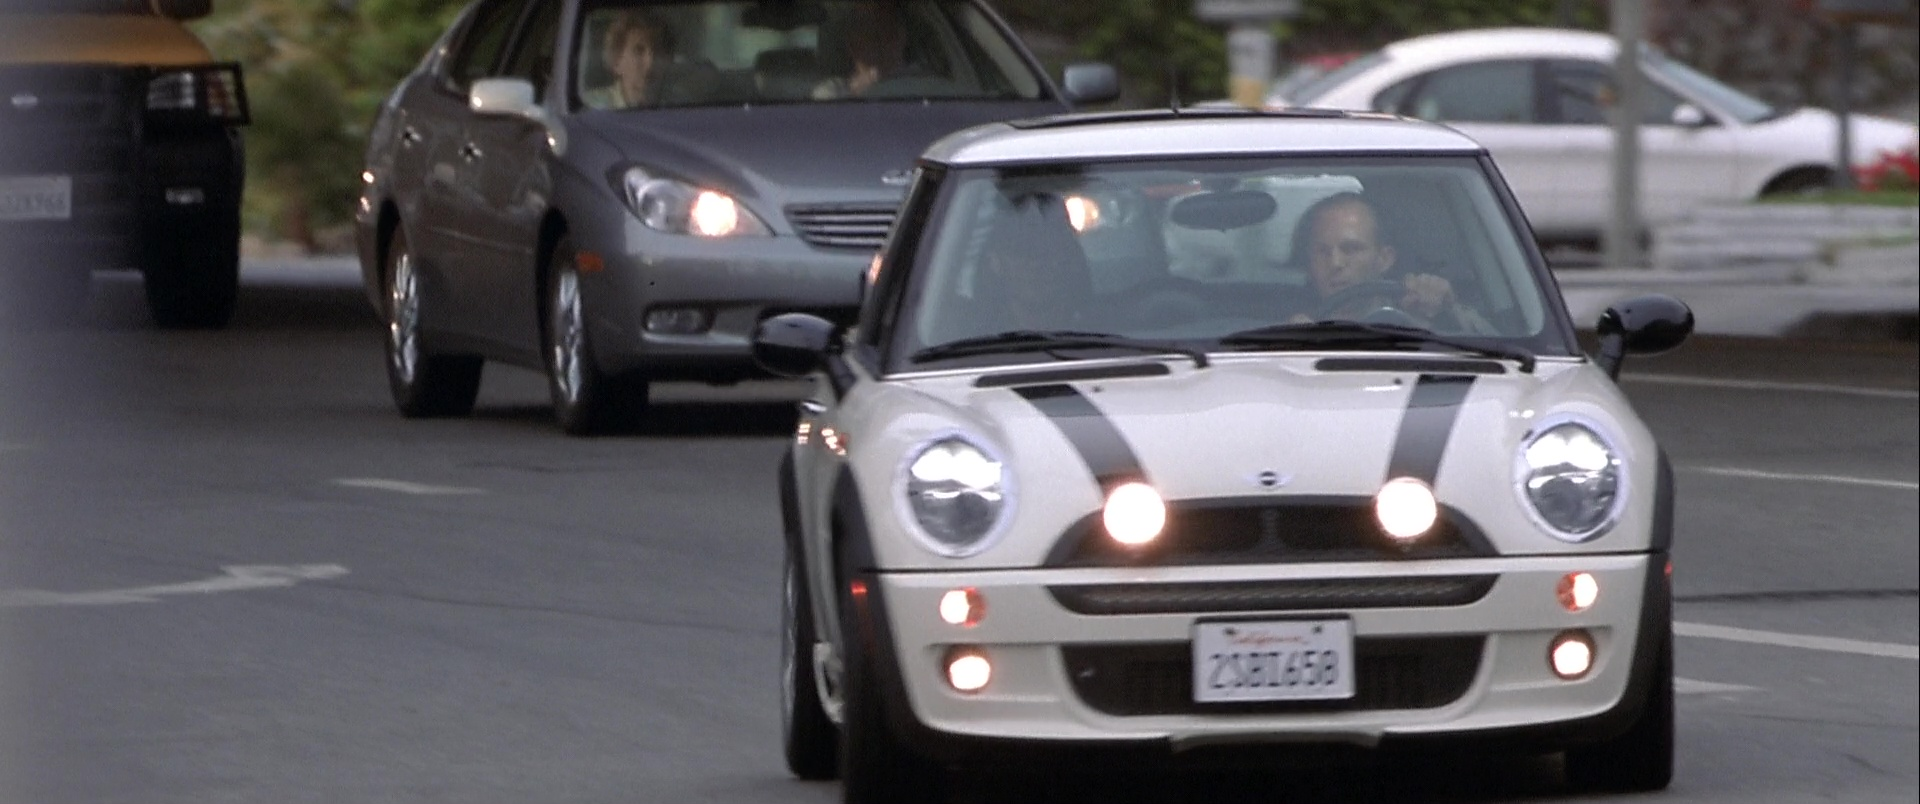 Mini Cooper S White Car Used By Jason Statham In The